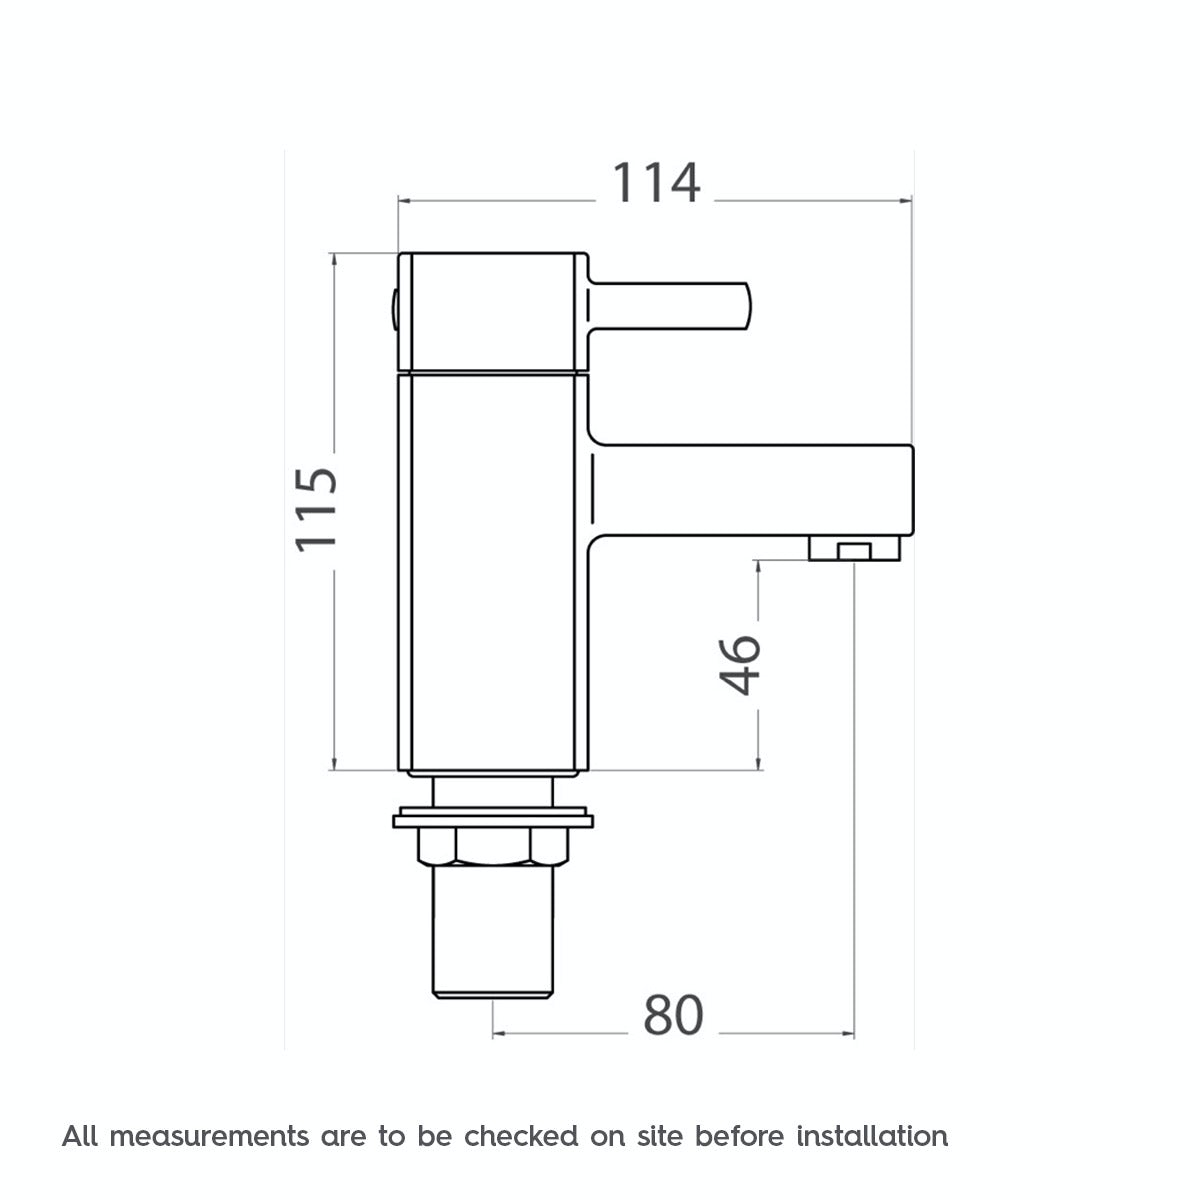 Dimensions for Orchard Derwent bath pillar taps